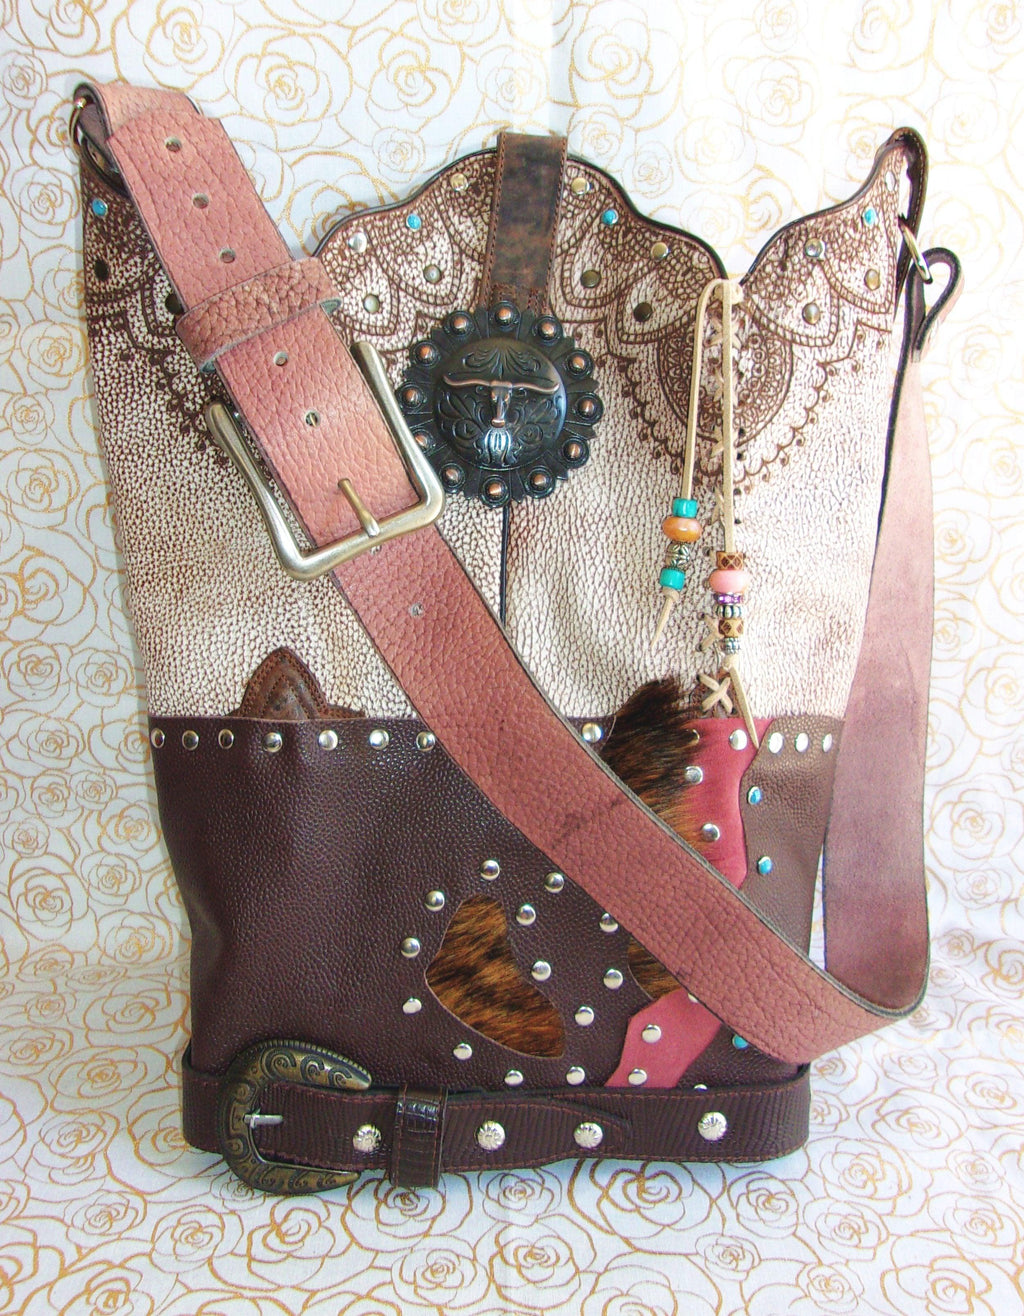 Western Longhorn Shoulder Bag TS264 - Cowboy Boot Purses by Chris Thompson for Distinctive Western Fashion